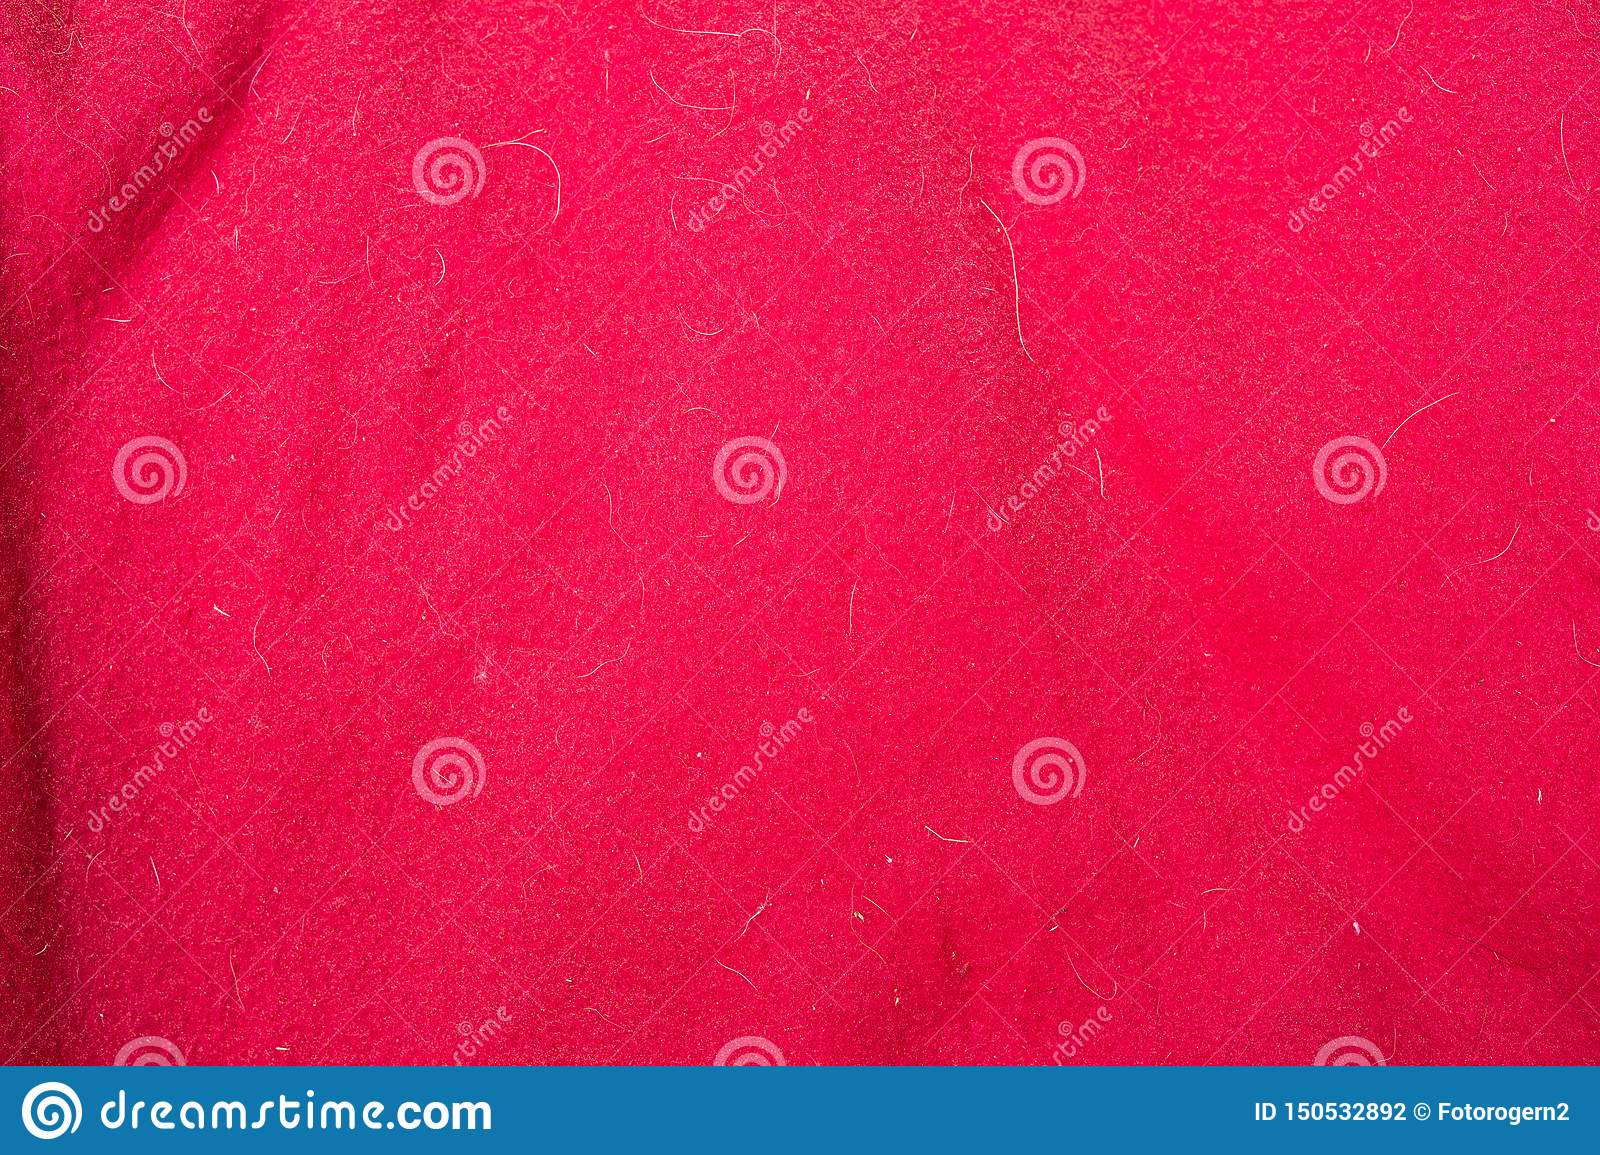 Red fabric texture with doghair and spots